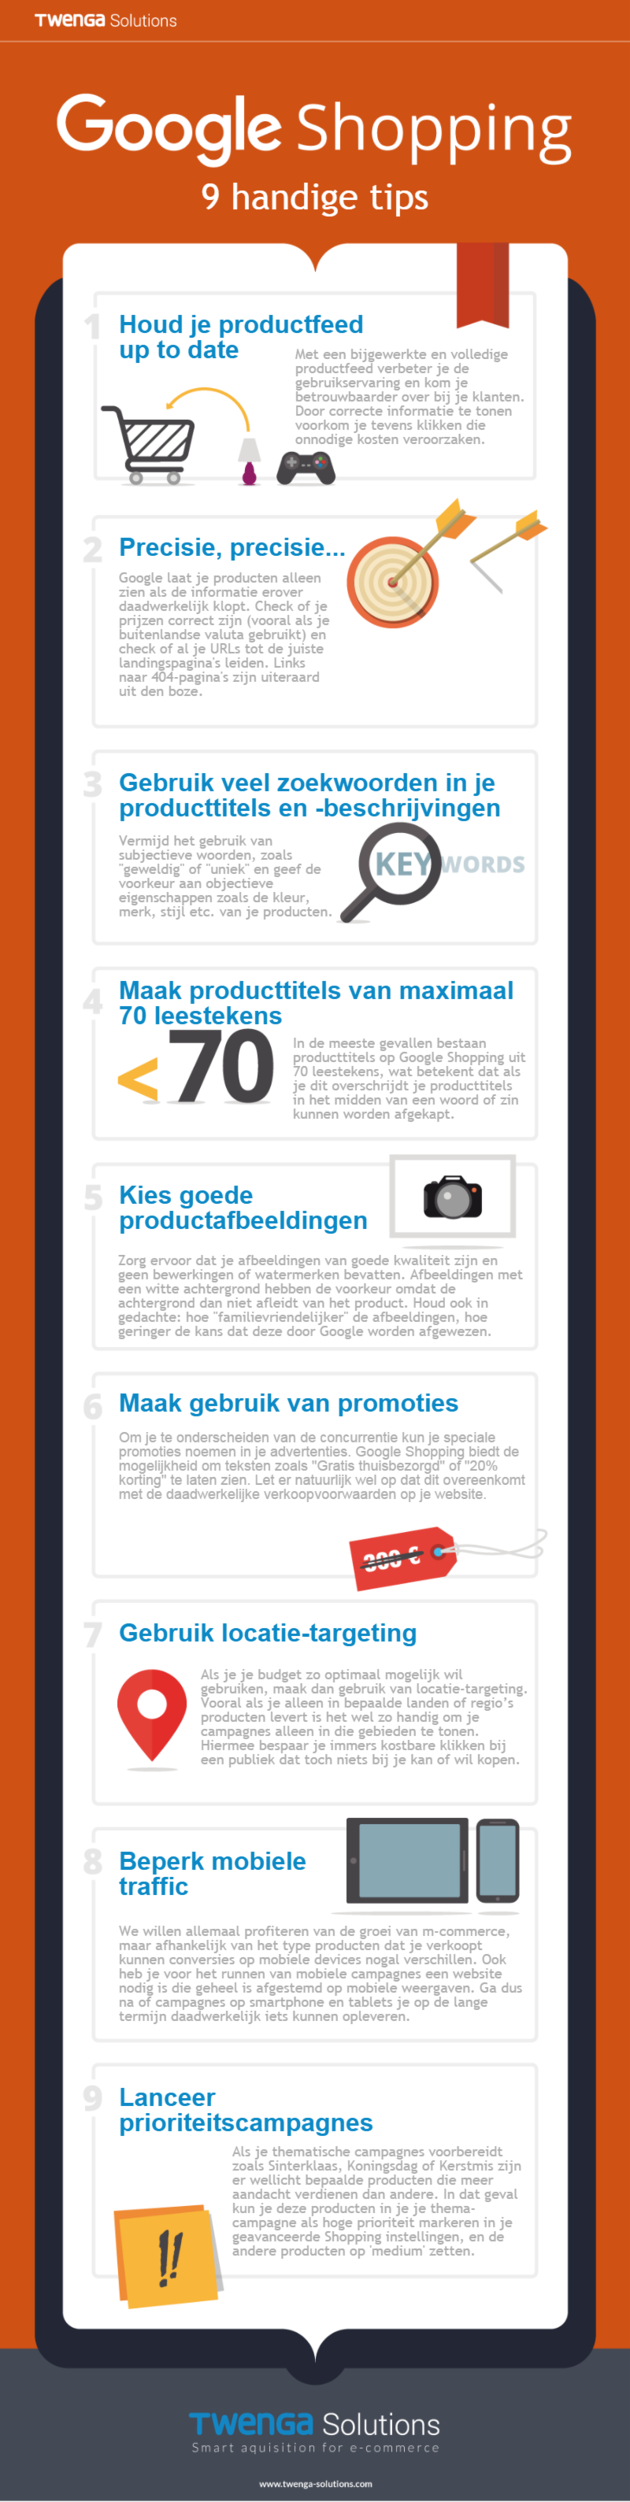 Twenga Solutions [Infographic] 9 tips voor je Google Shopping campagnes